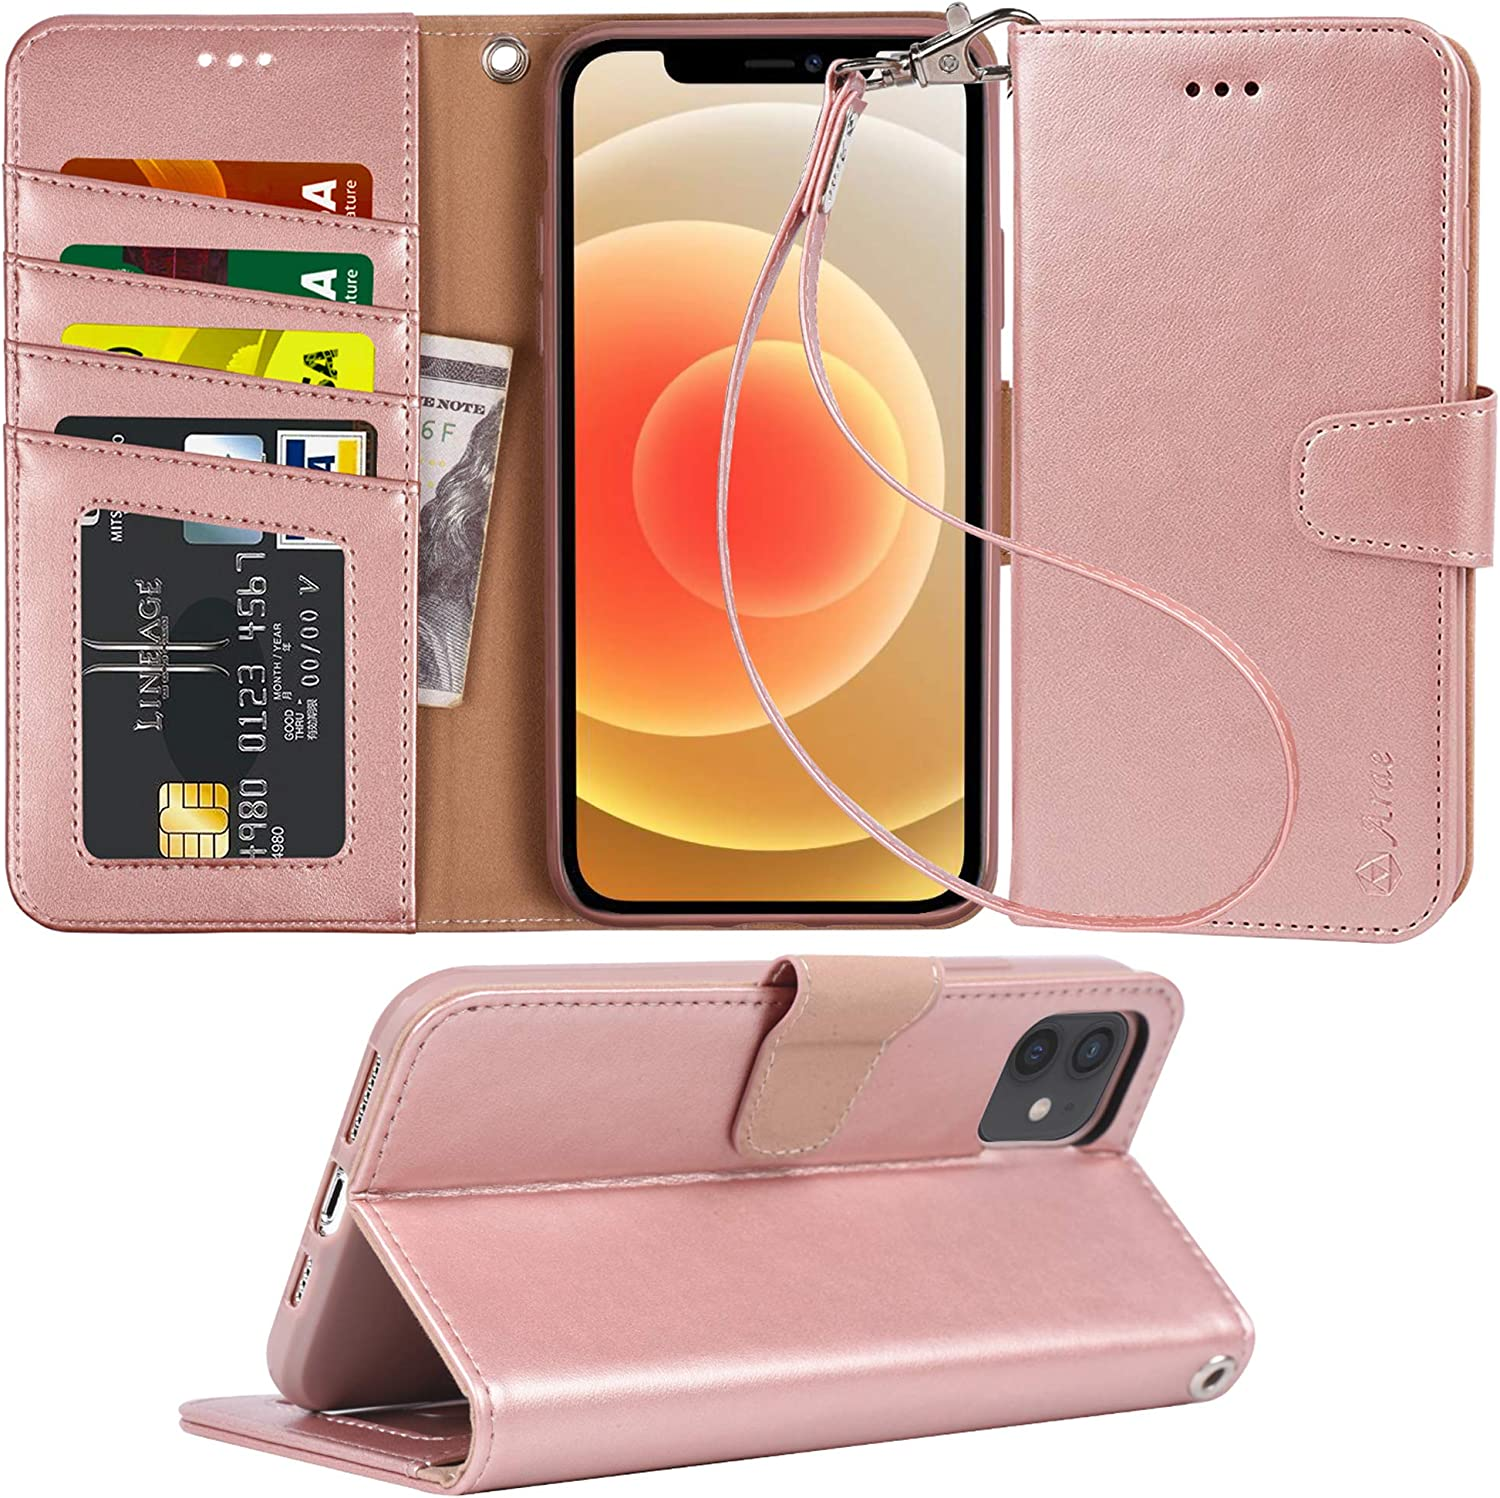 Arae Compatible with iPhone 12 Case and iPhone 12 Pro Case Wallet Flip Cover with Card Holder and Wrist Strap for iPhone 12/12 Pro 6.1 inch- Rose Gold